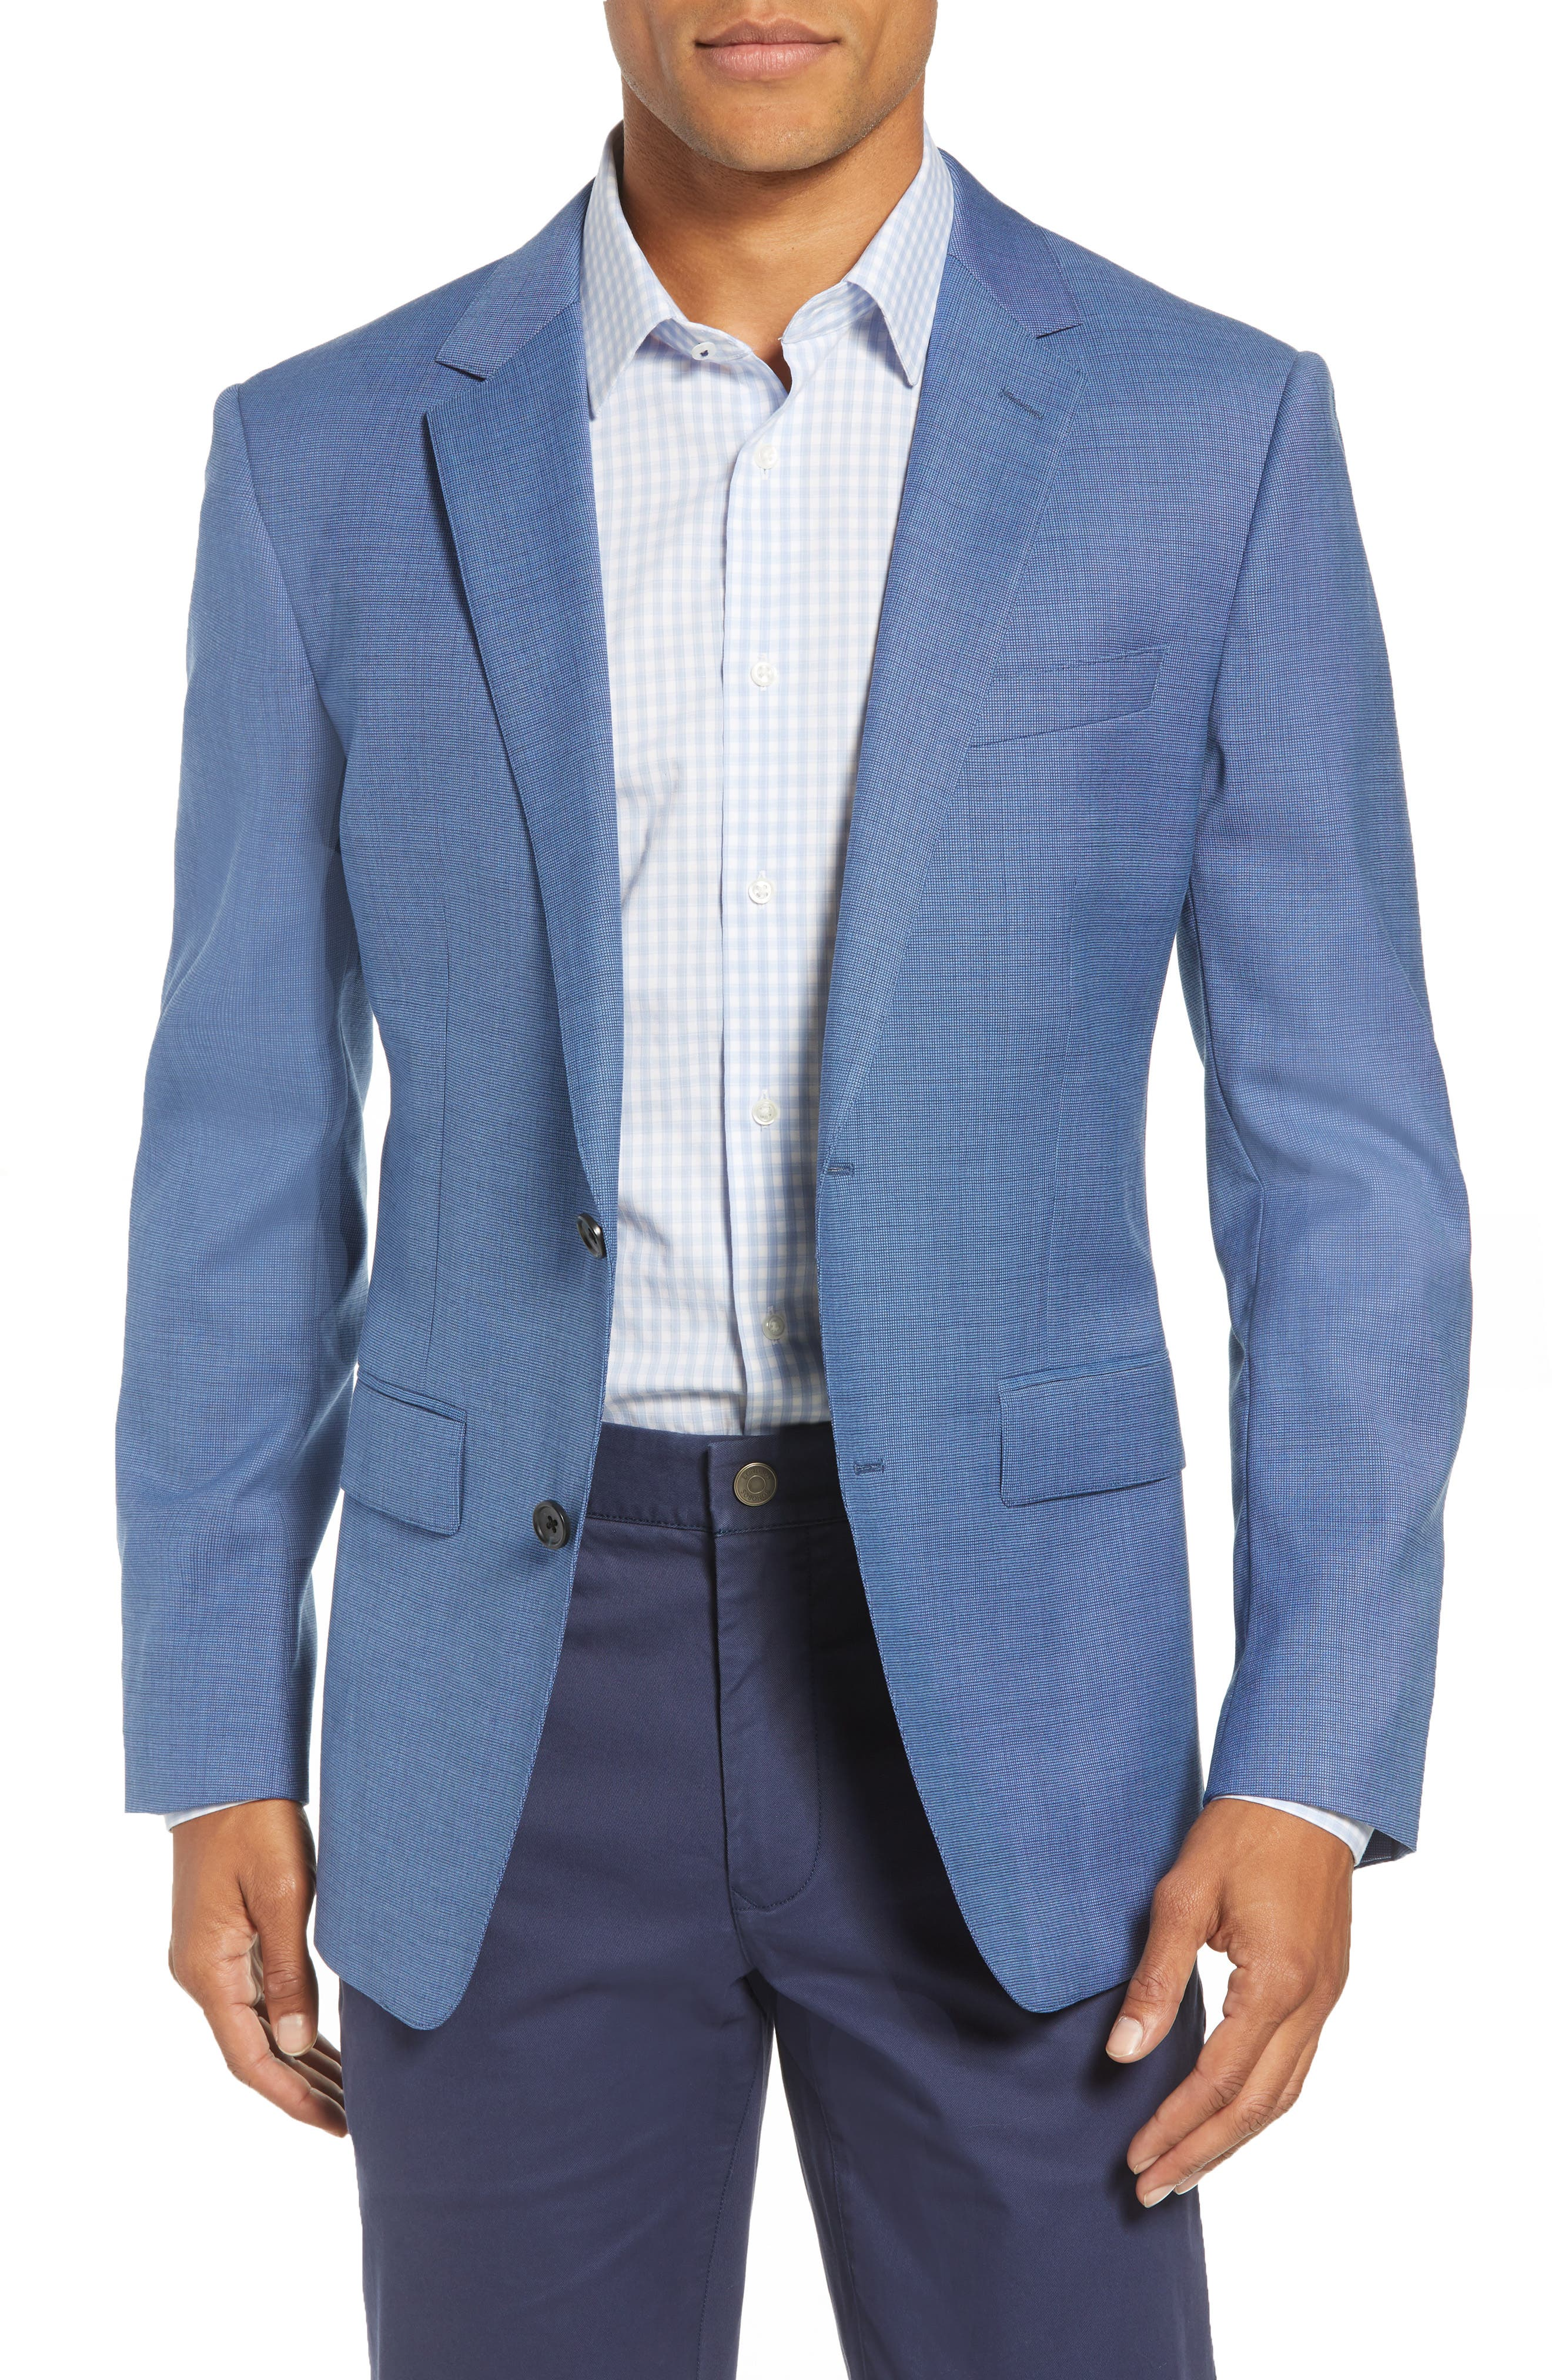 Jetsetter Trim Fit Stretch Solid Wool Suit Jacket,                             Main thumbnail 1, color,                             BRIGHTER BLUE